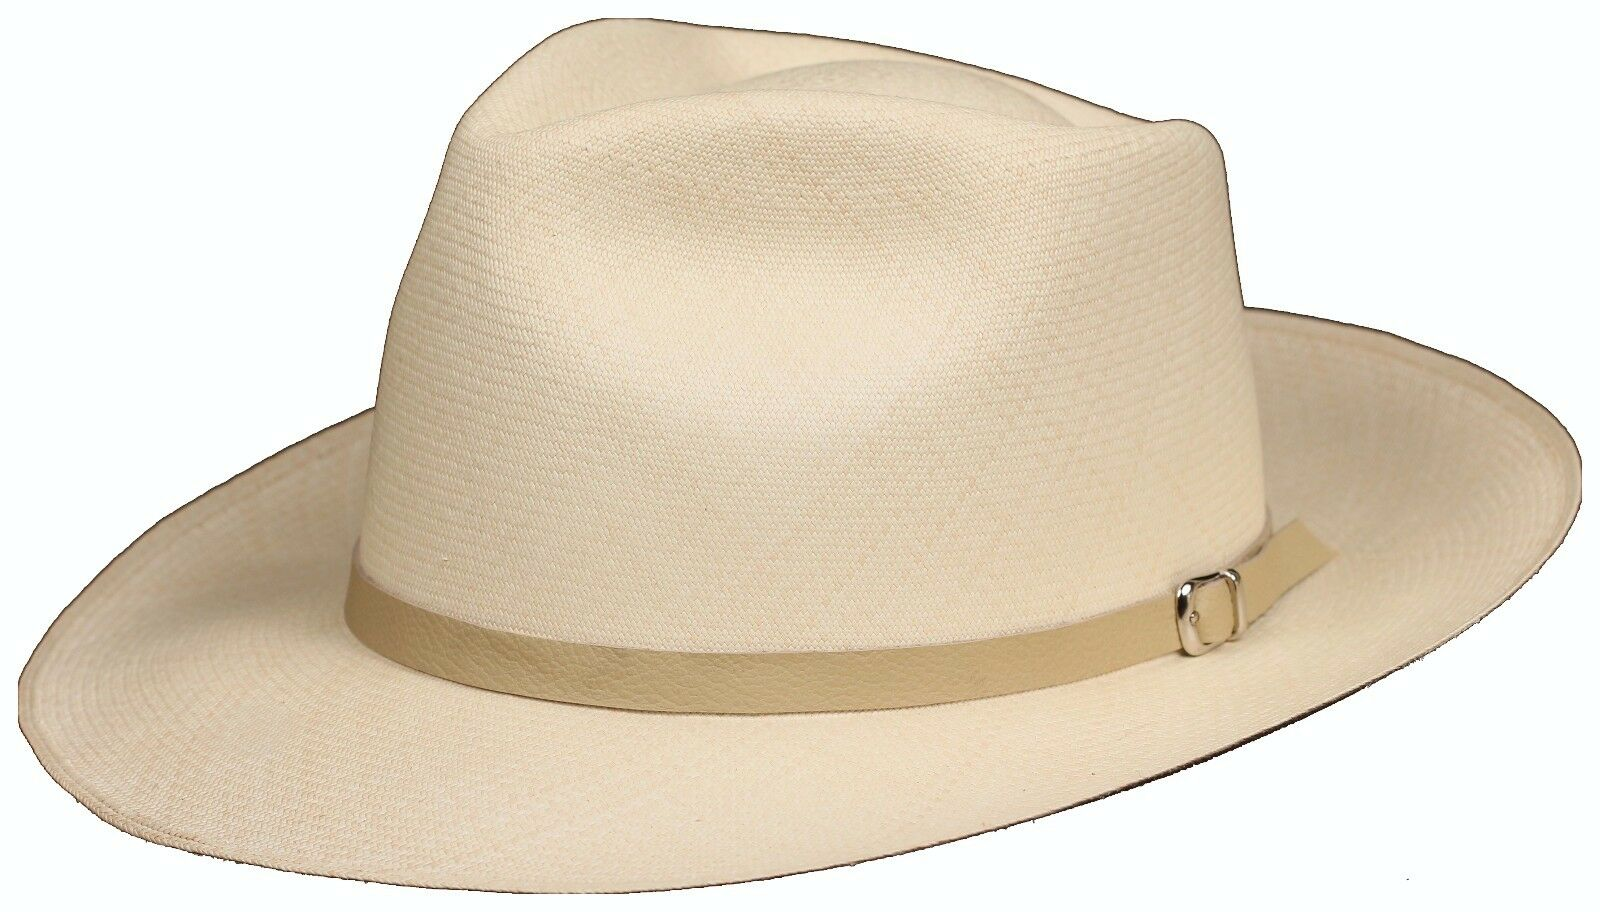 Leather Hat band 92 - Cream- Men Ladies Sun Panama Hat fedora Replacement  strap 1 of 3 ... 4599ad96e52d